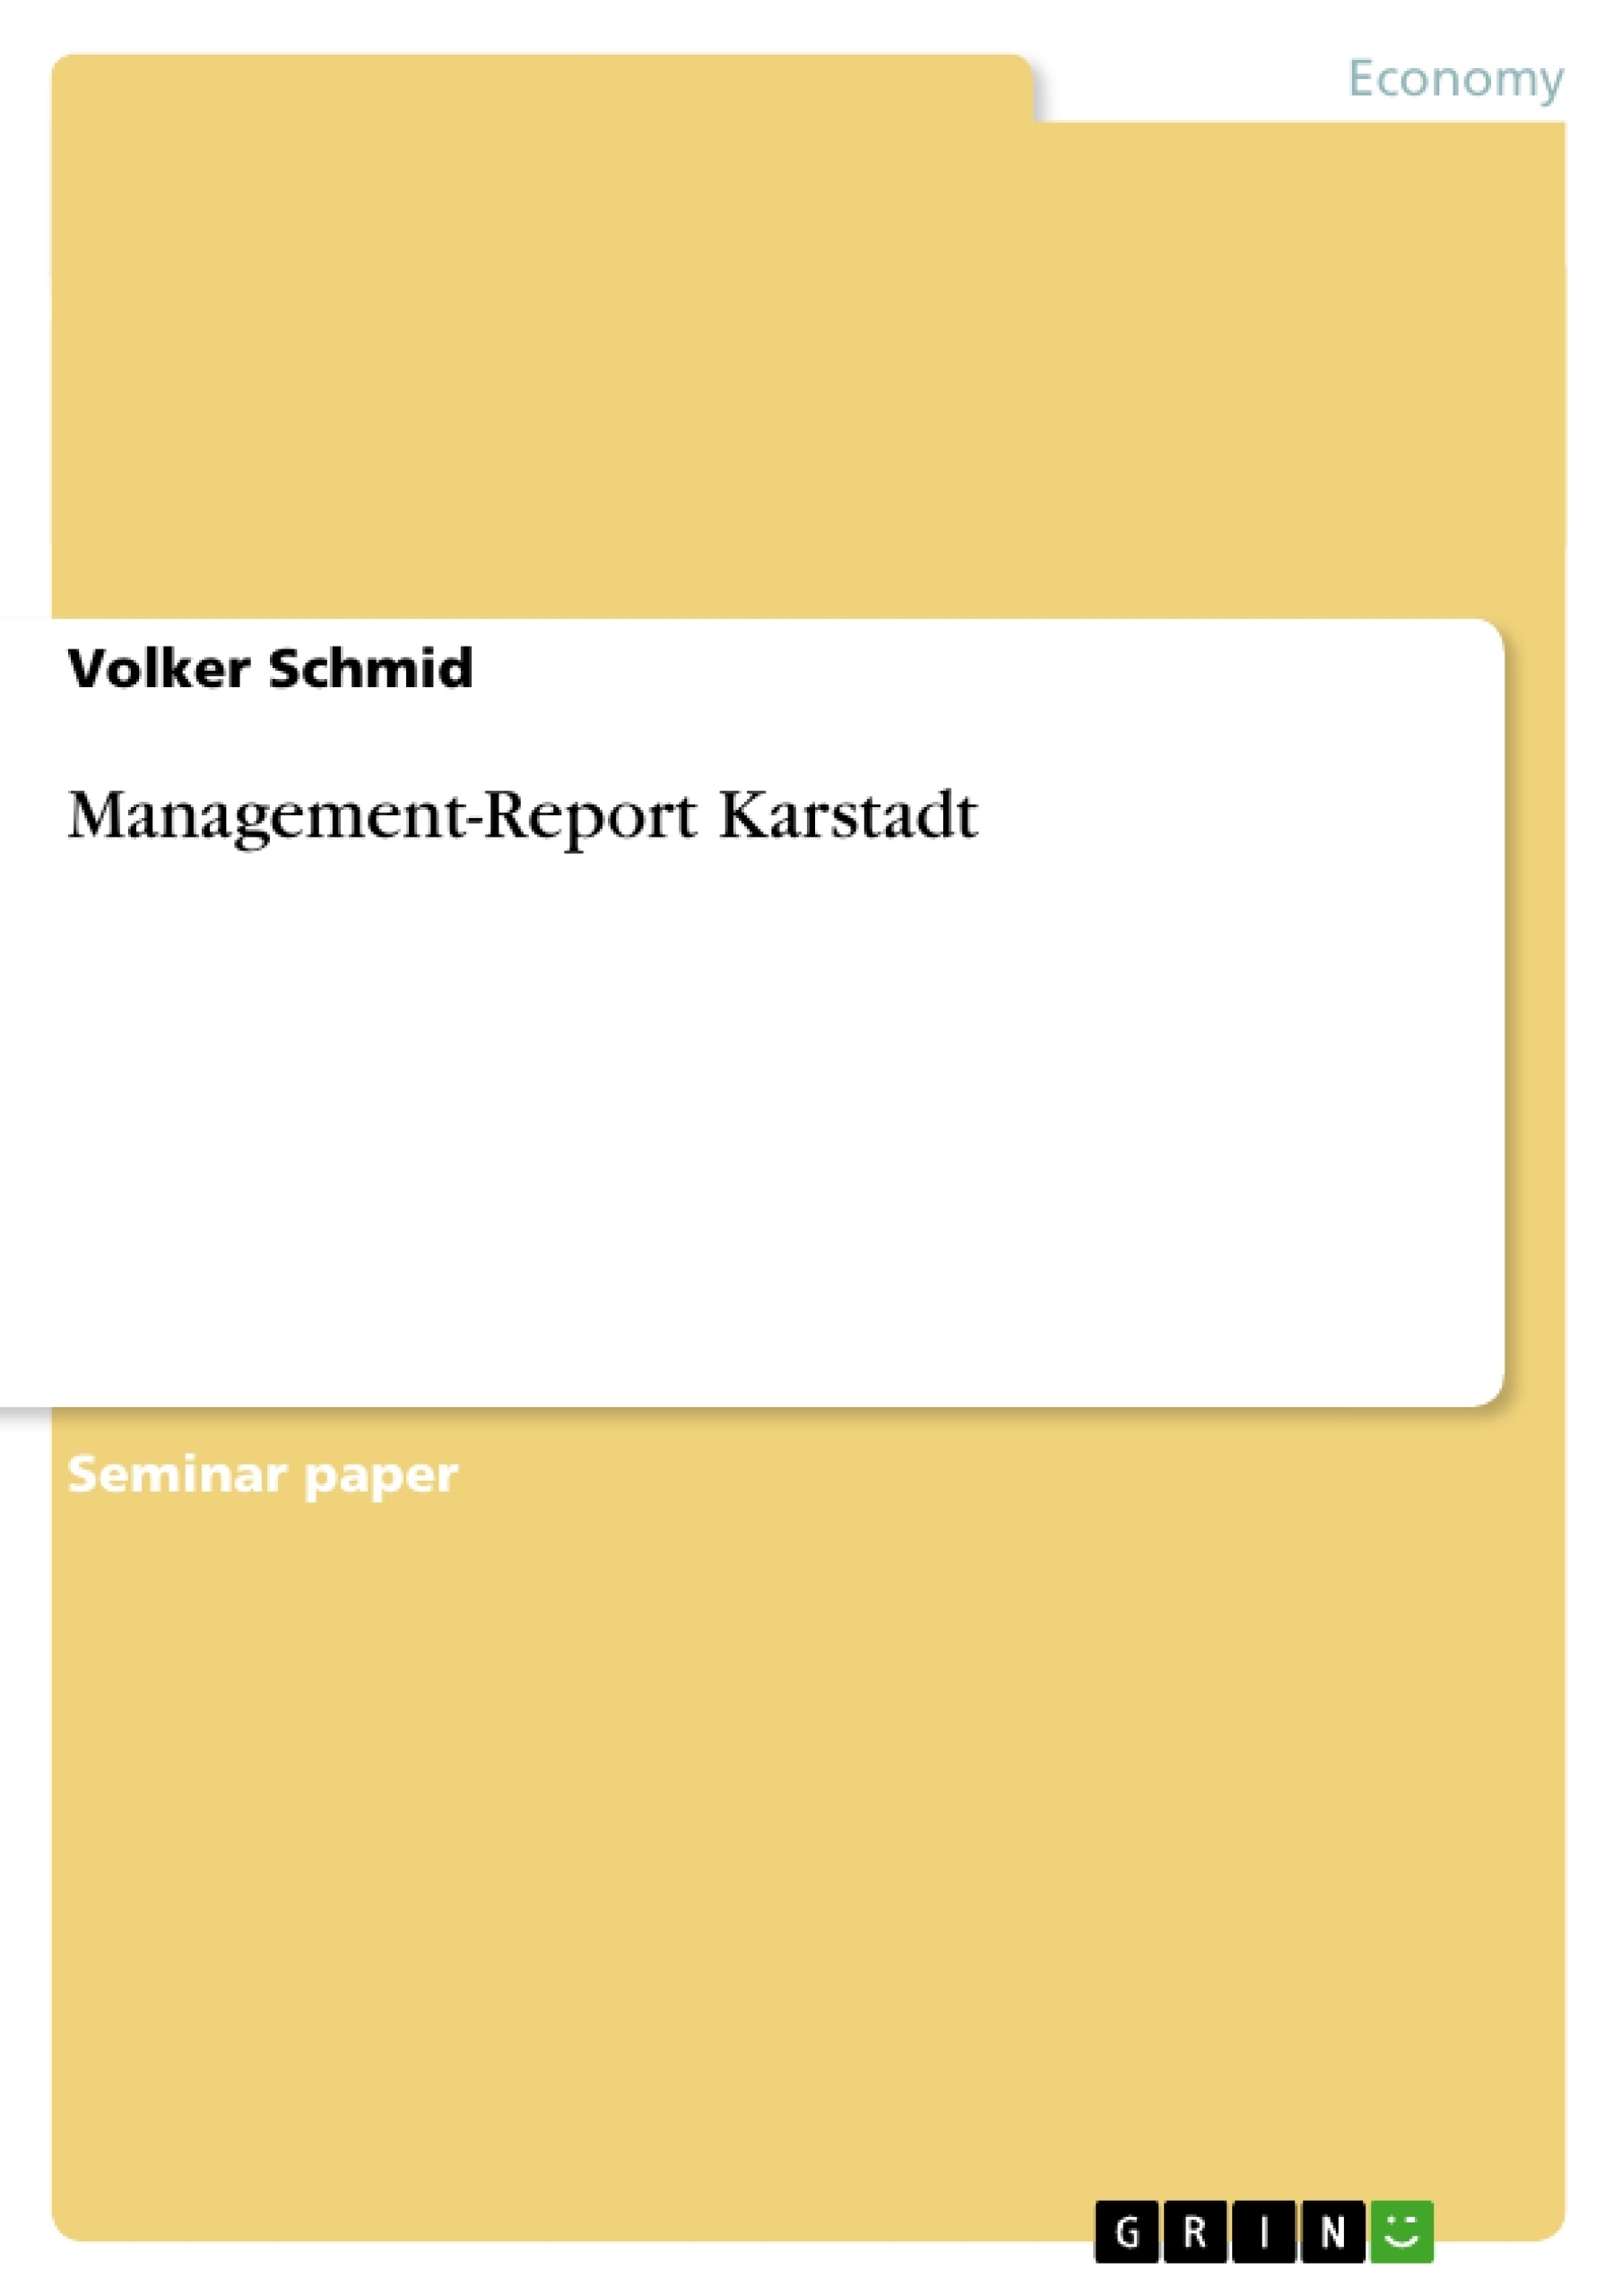 bachelor thesis change management